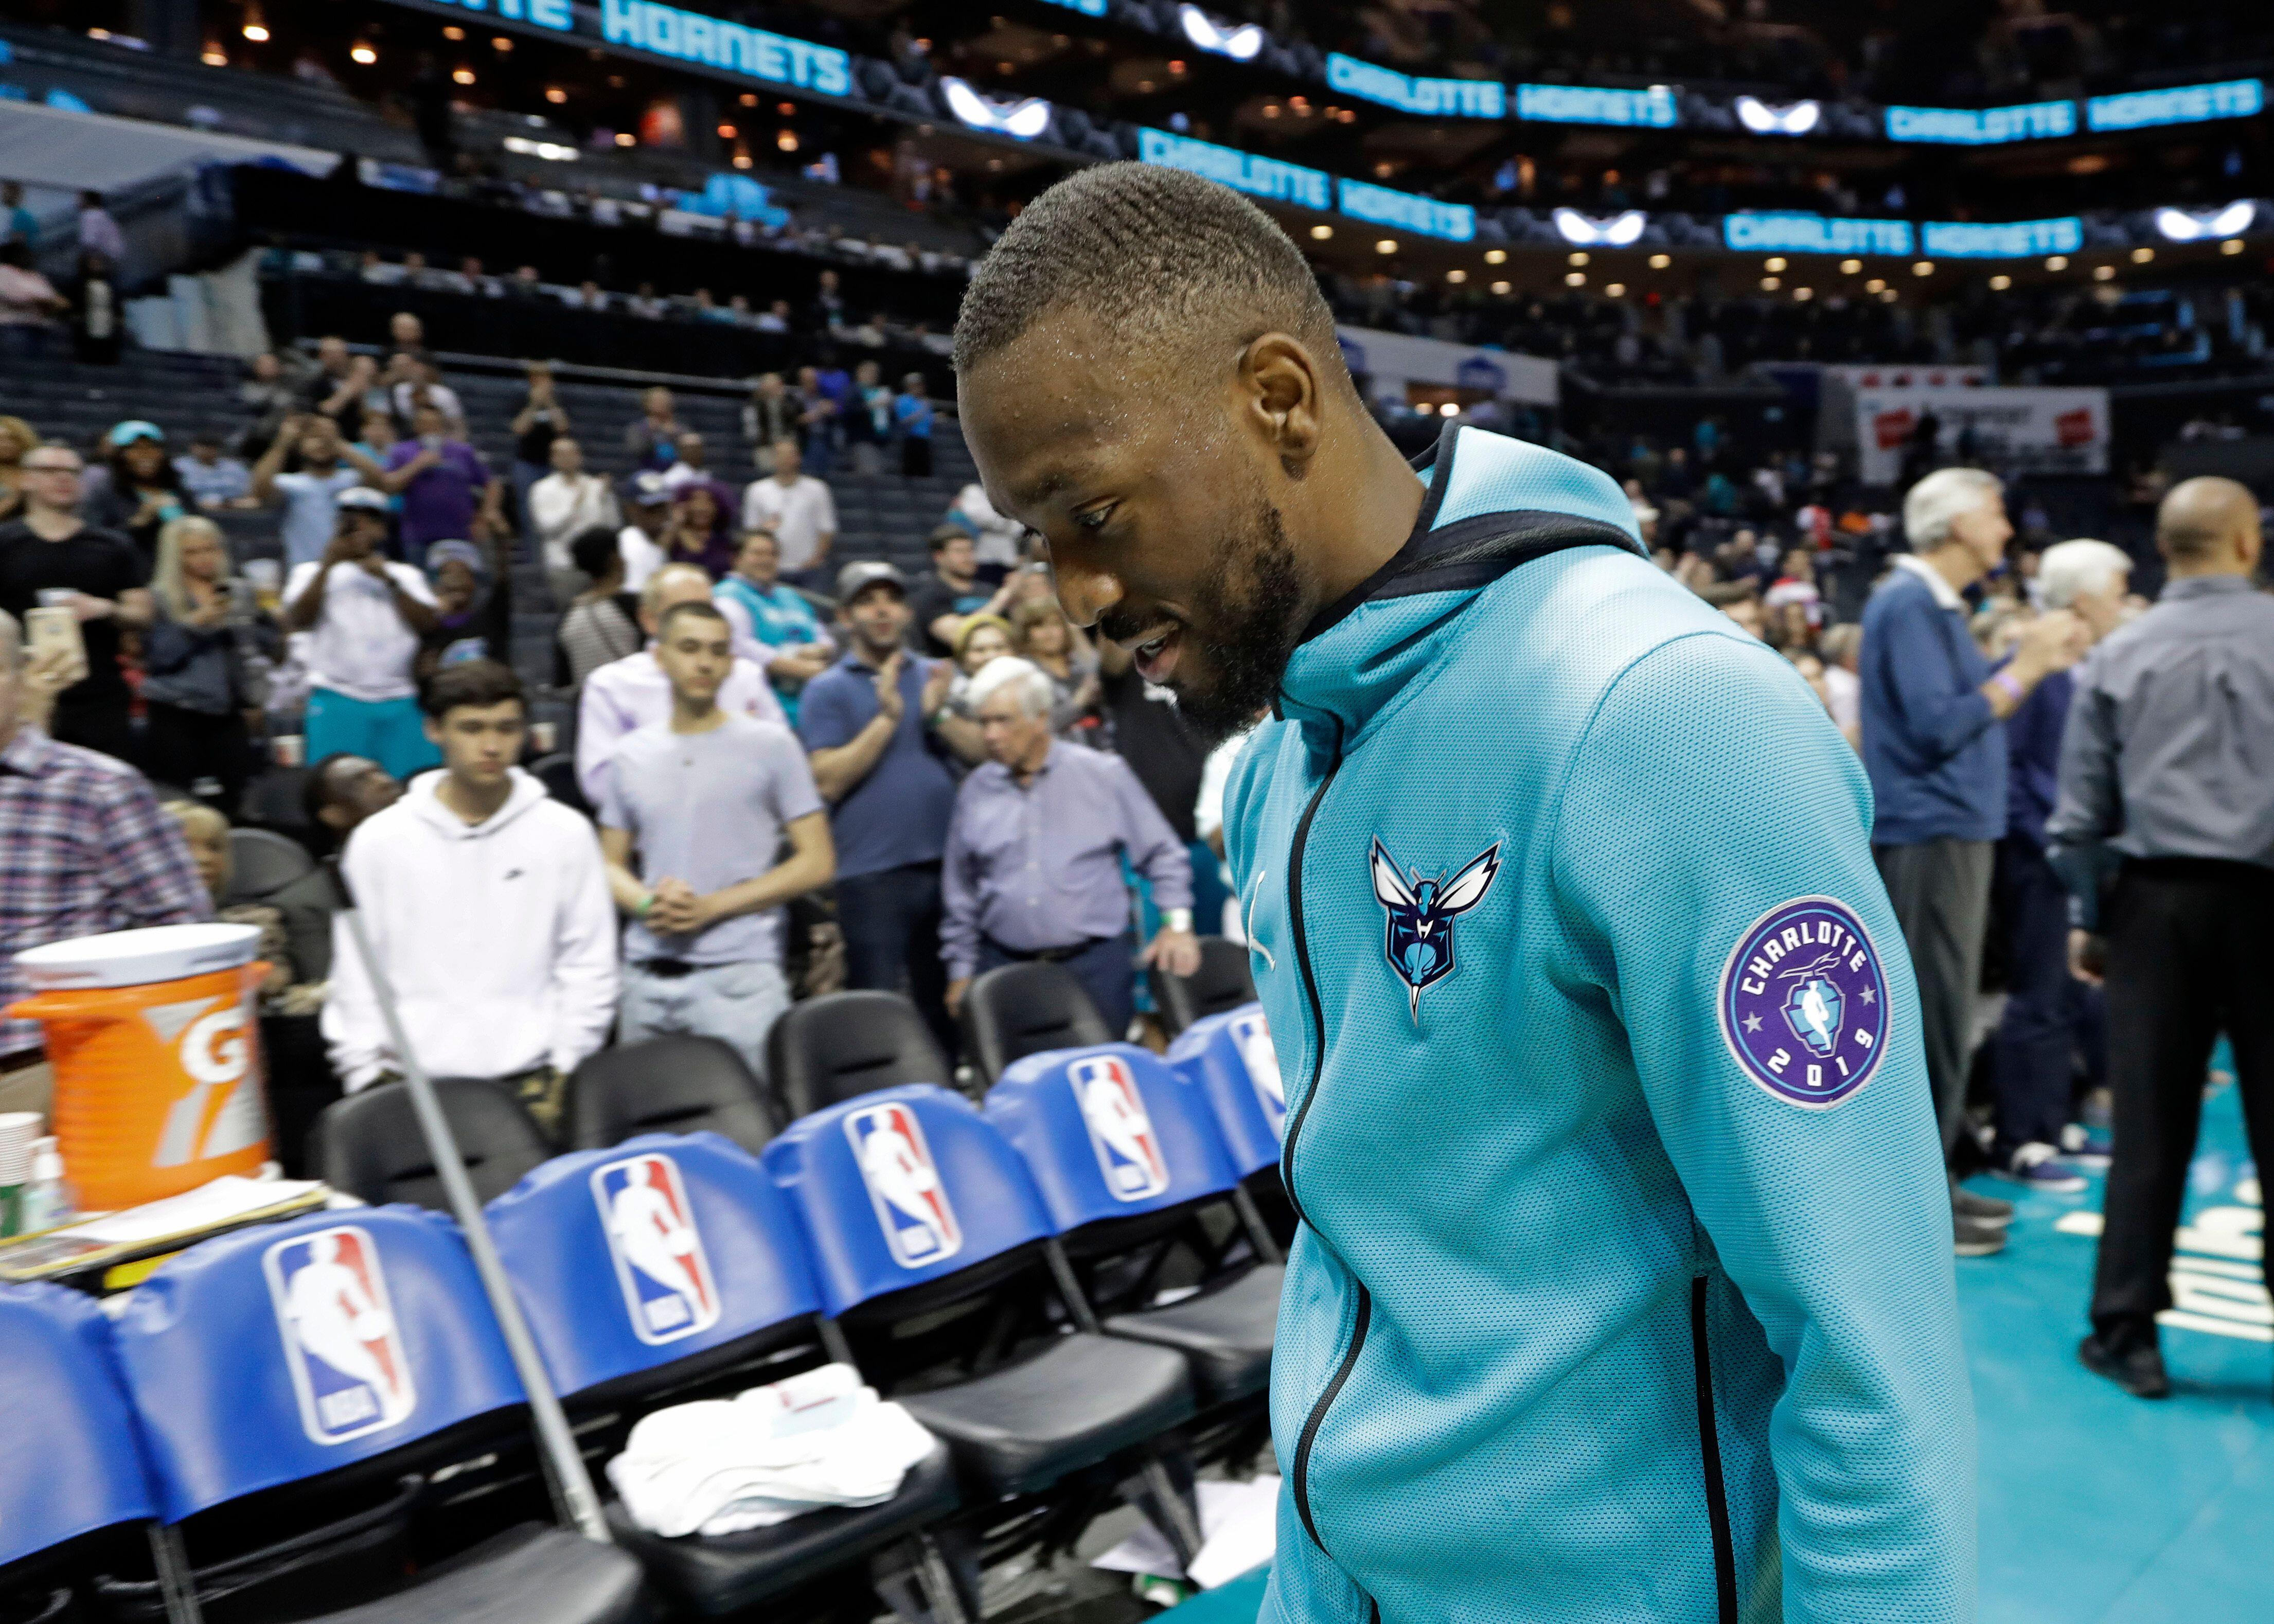 Kemba Walker's All-NBA selection puts Hornets in tough position